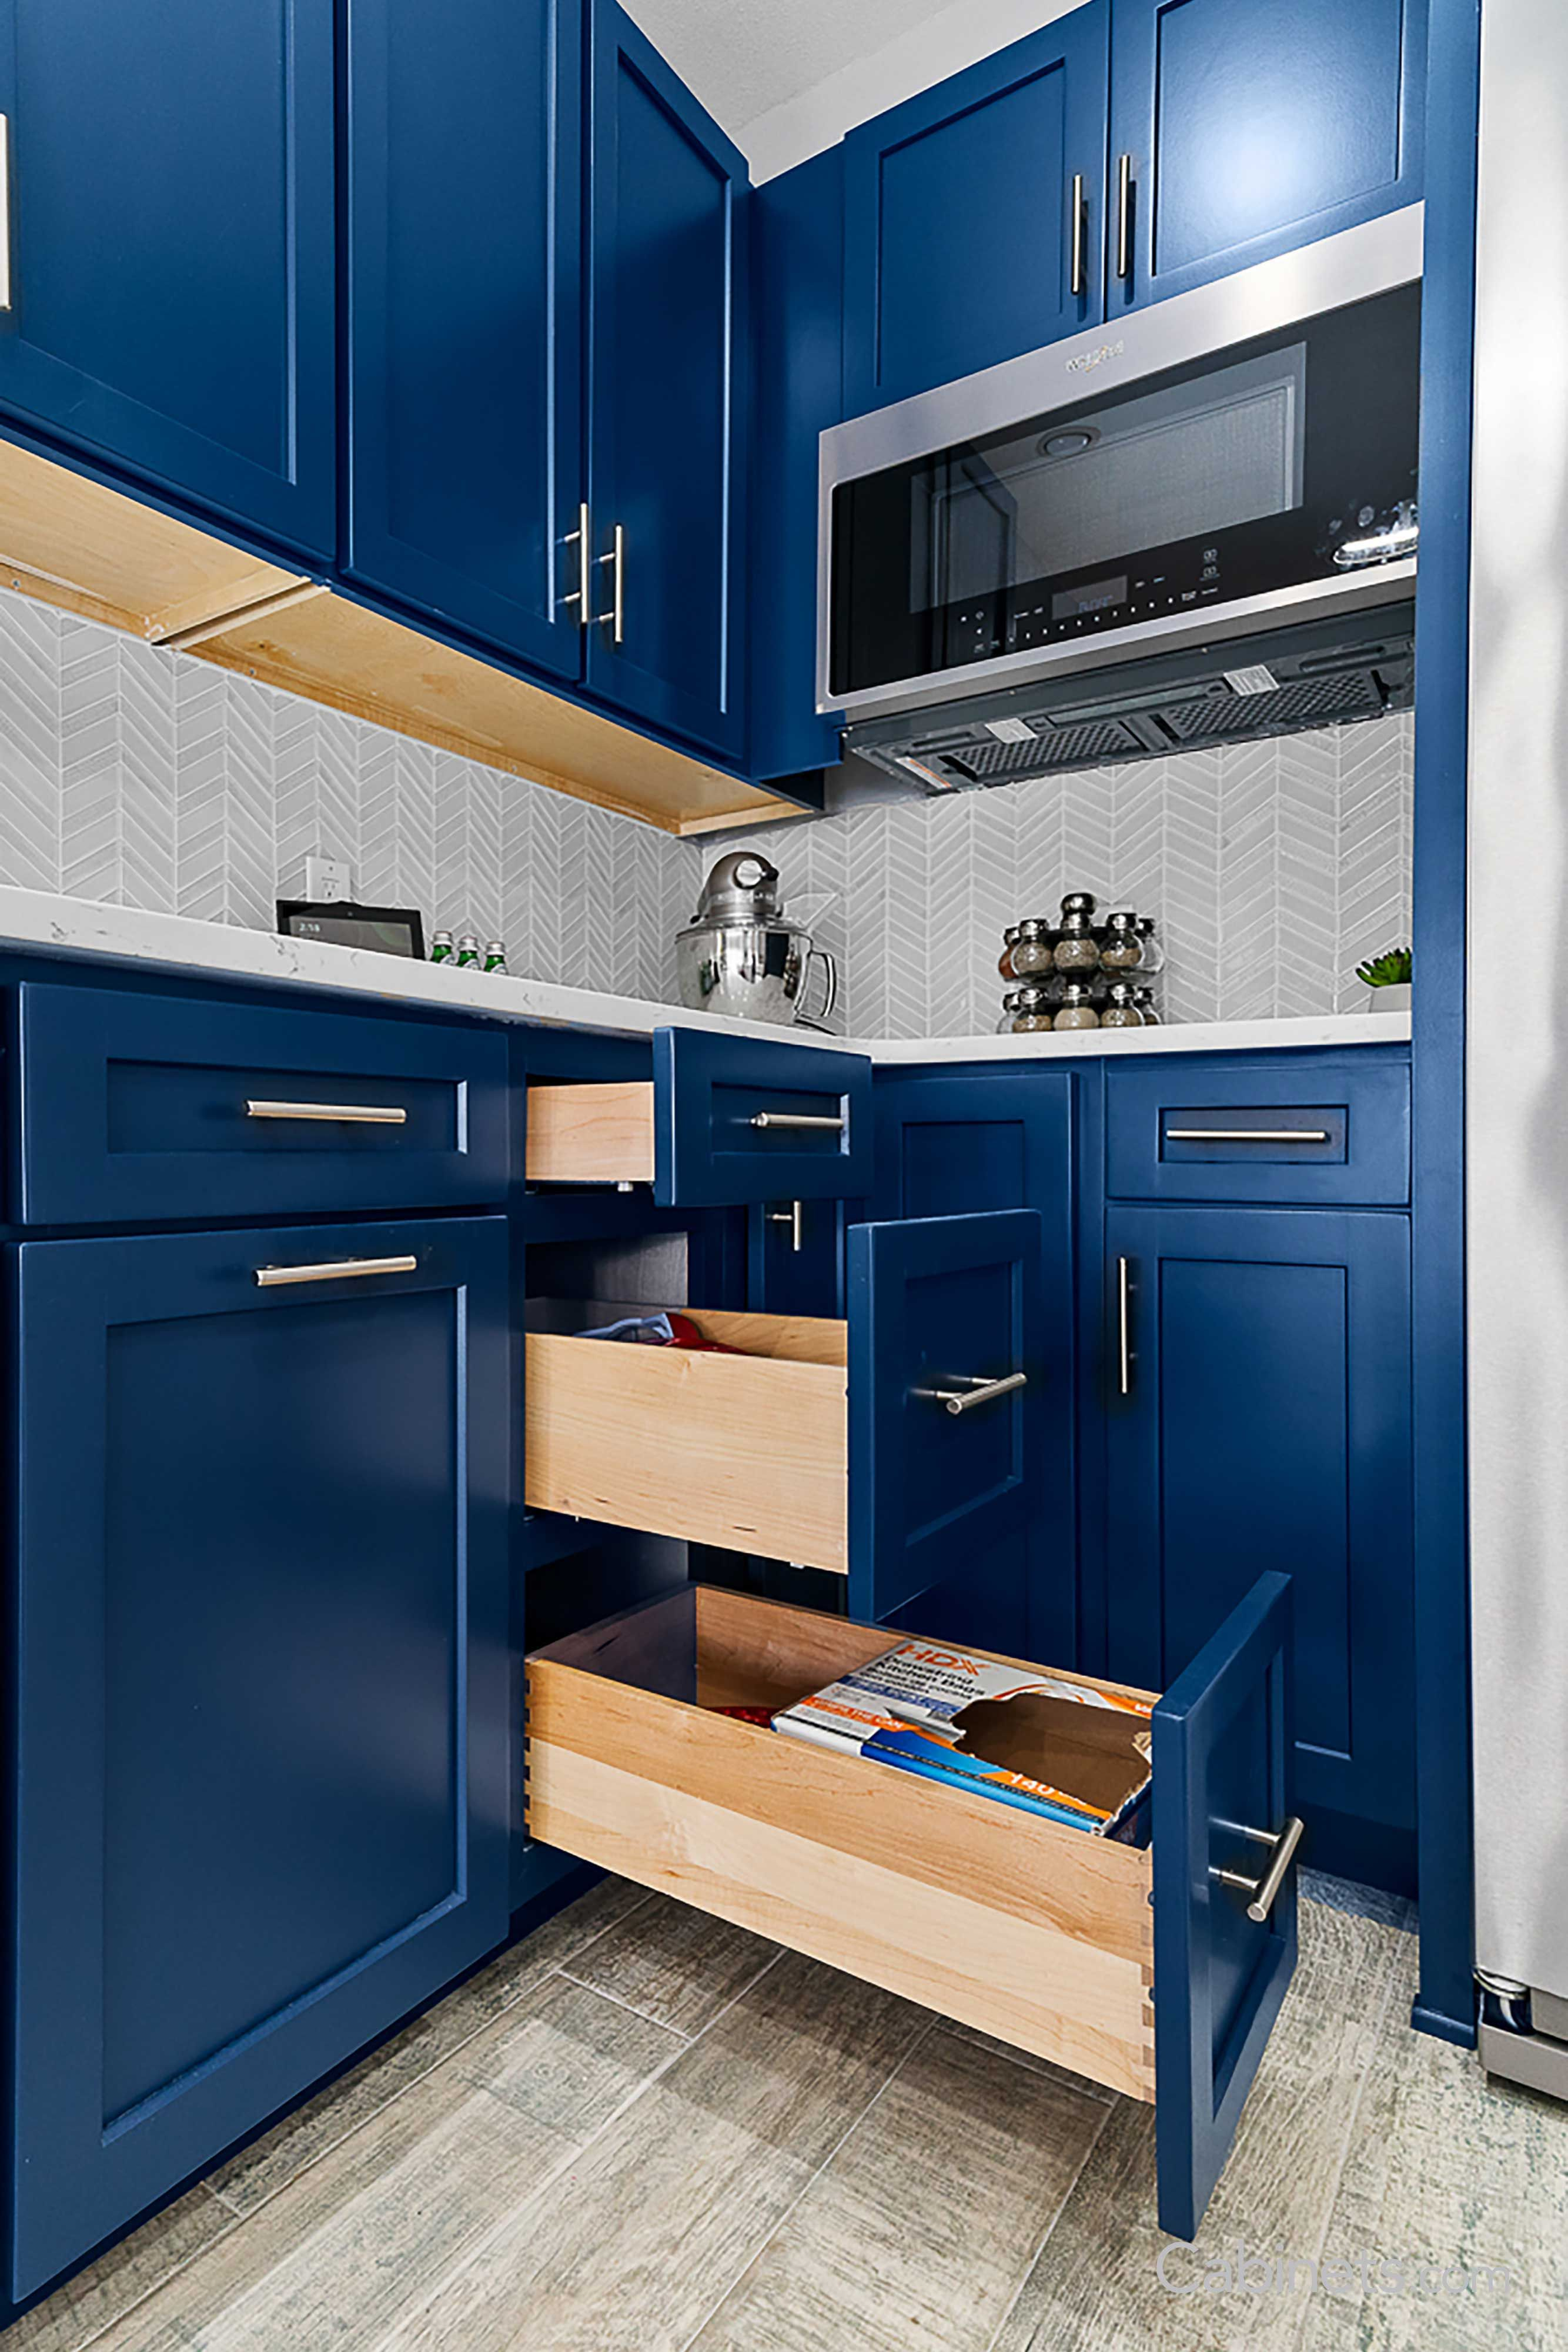 Colonial Ii Maple Naval Cabinets With Soft Close Deep Drawers For Maximum Storage And Organiz Colorful Kitchen Decor Cheap Kitchen Decor Navy Kitchen Cabinets